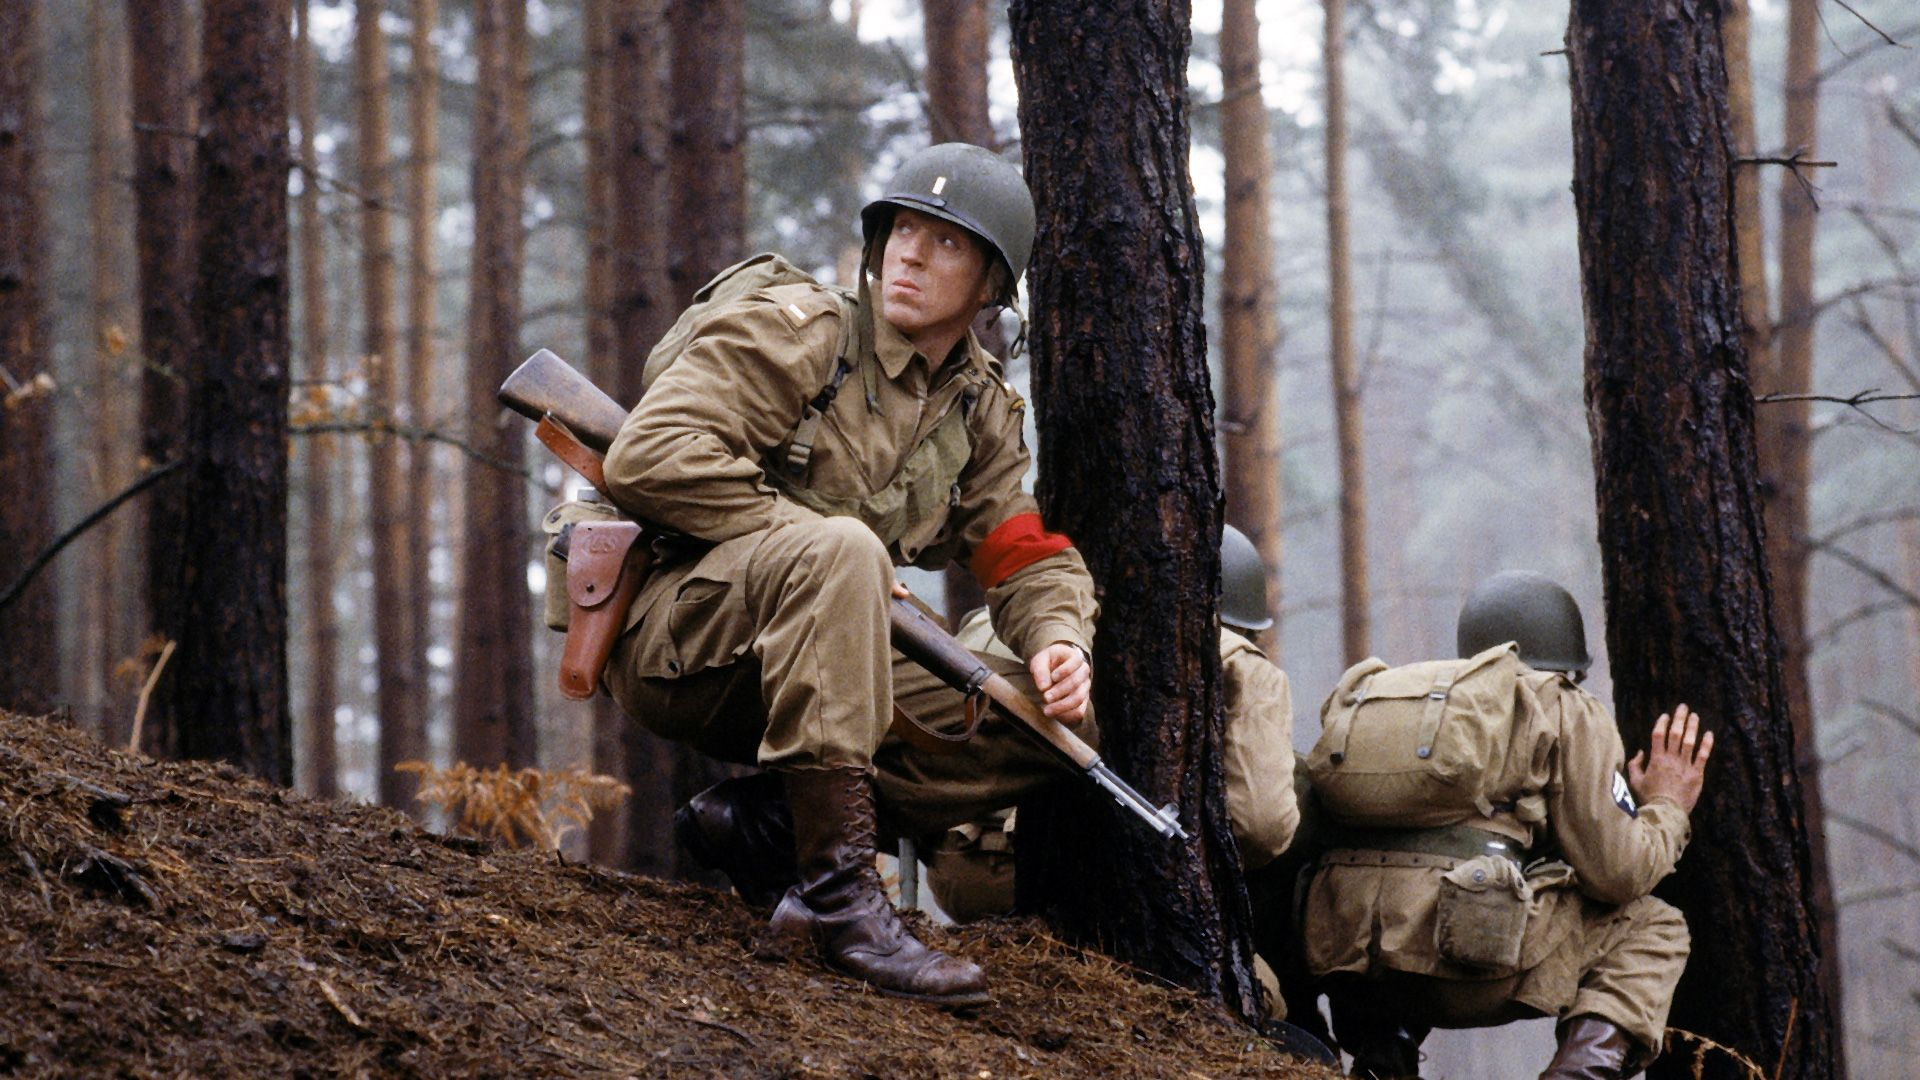 Apple is working on a Band of Brothers follow-up series with Tom Hanks and Steven Spielberg